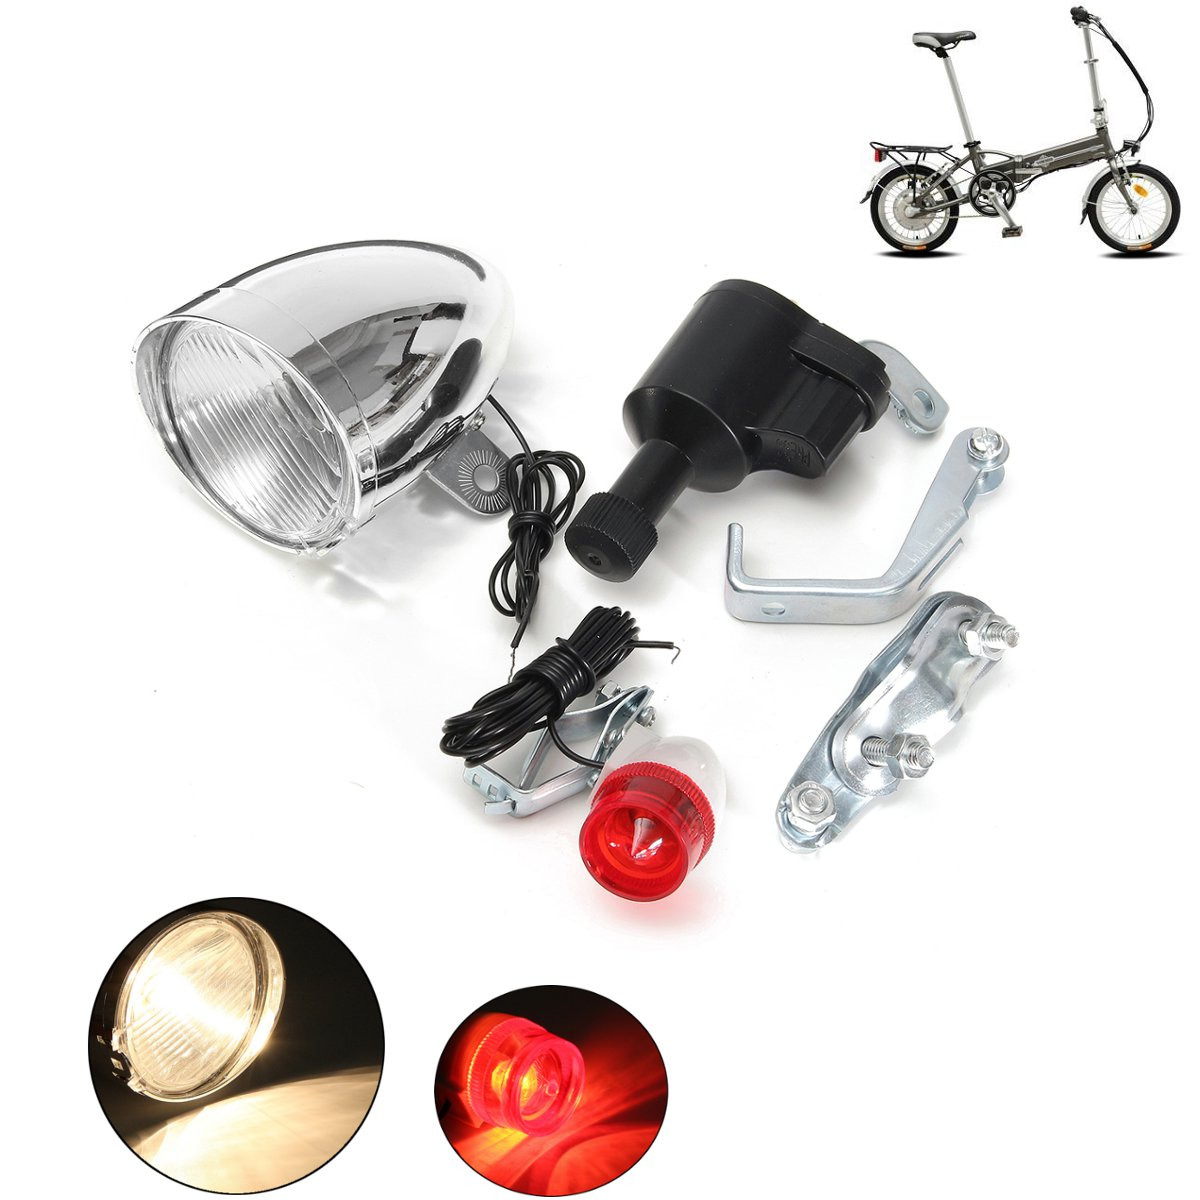 1Set 6V 3W Bicycle for Dynamo Lights Set Safety No...